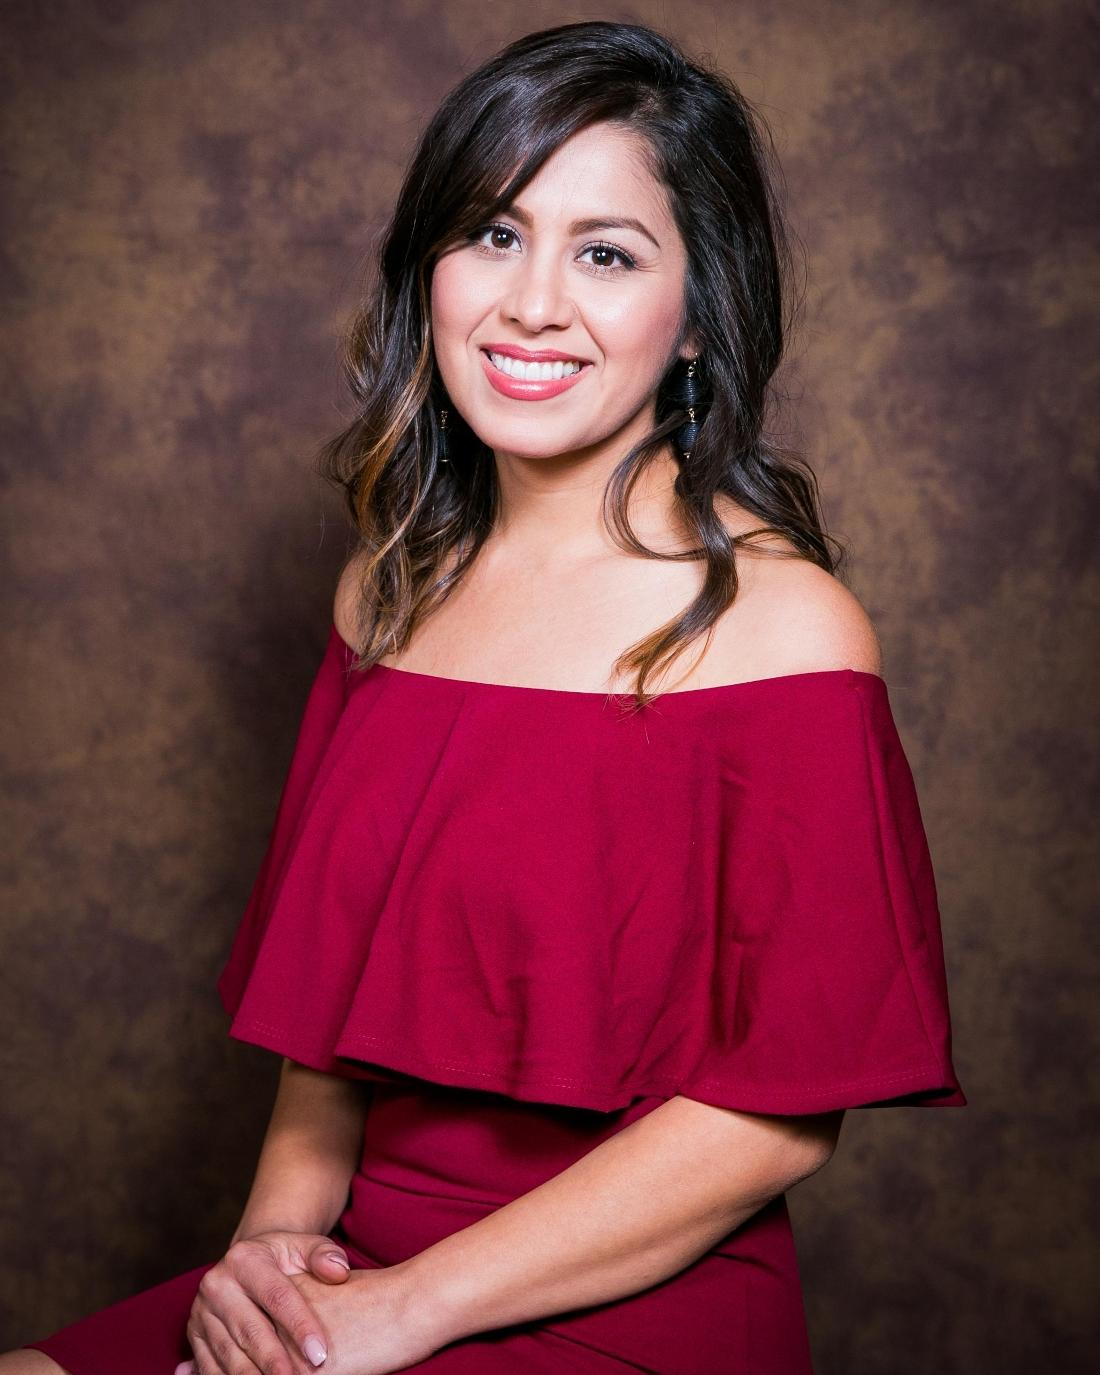 Leslie Ceja, a Dental Hygienist at The Dental Care Center in 91405